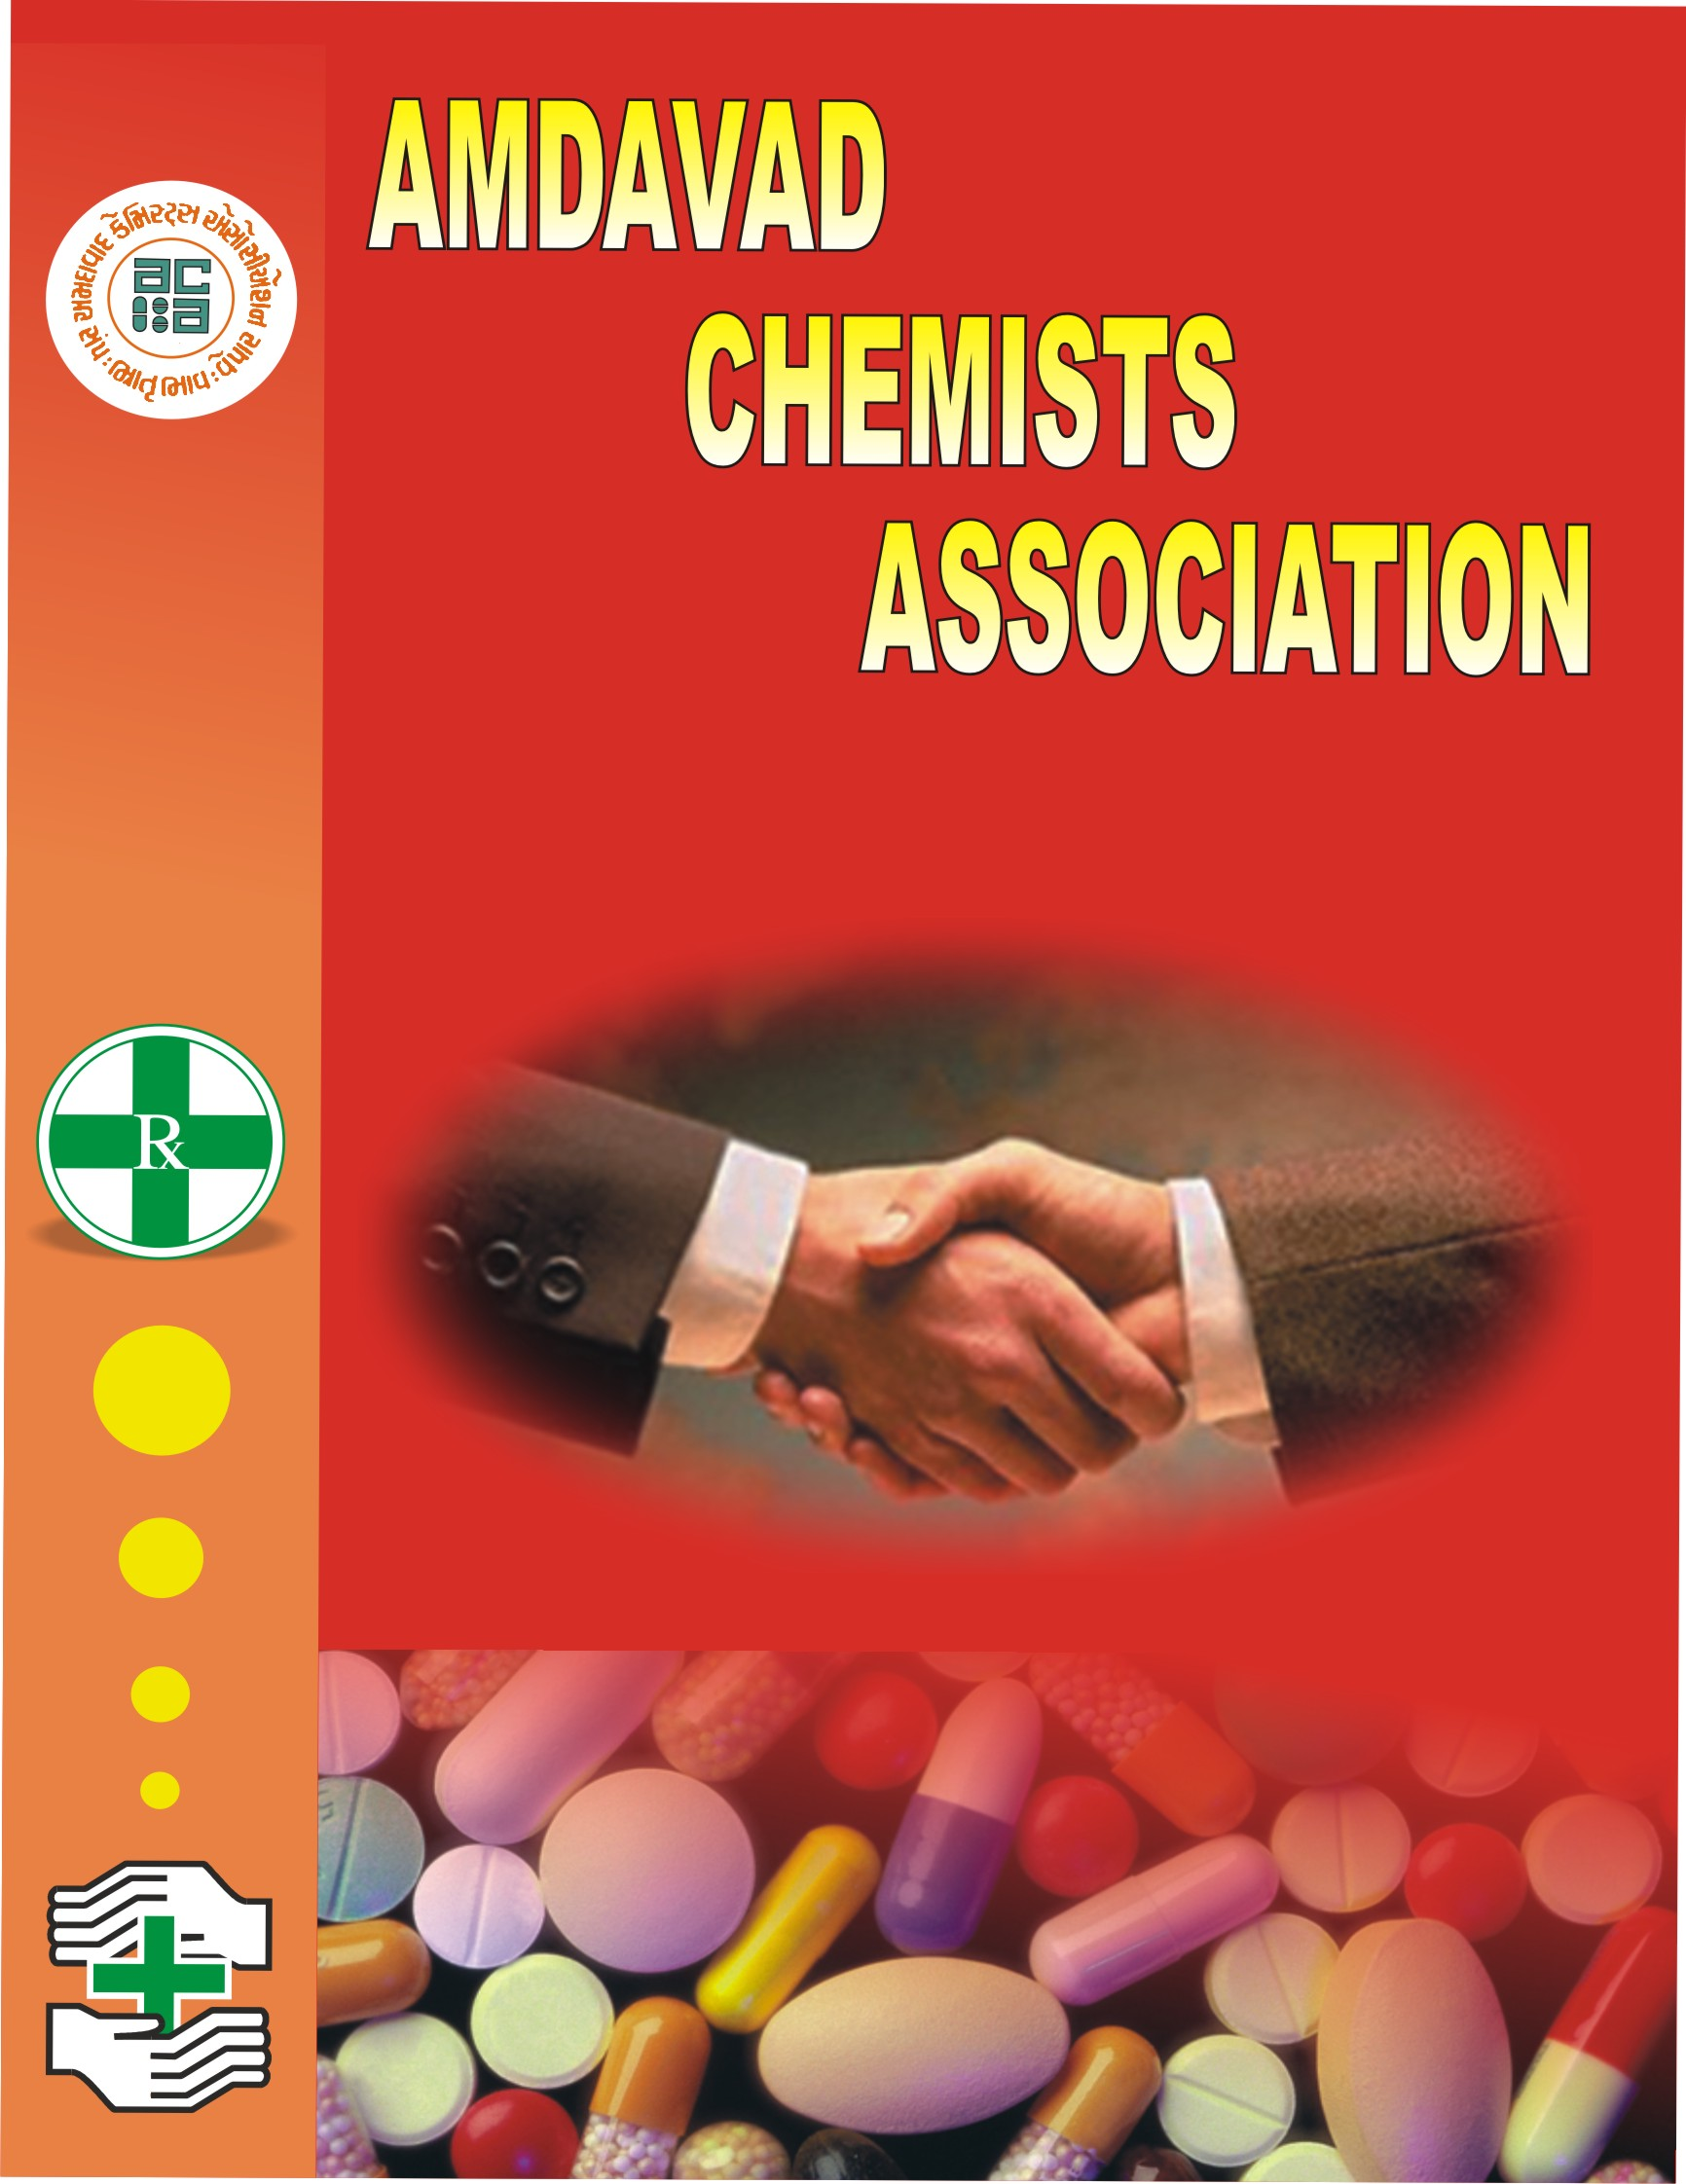 Amdavad Chemists Association